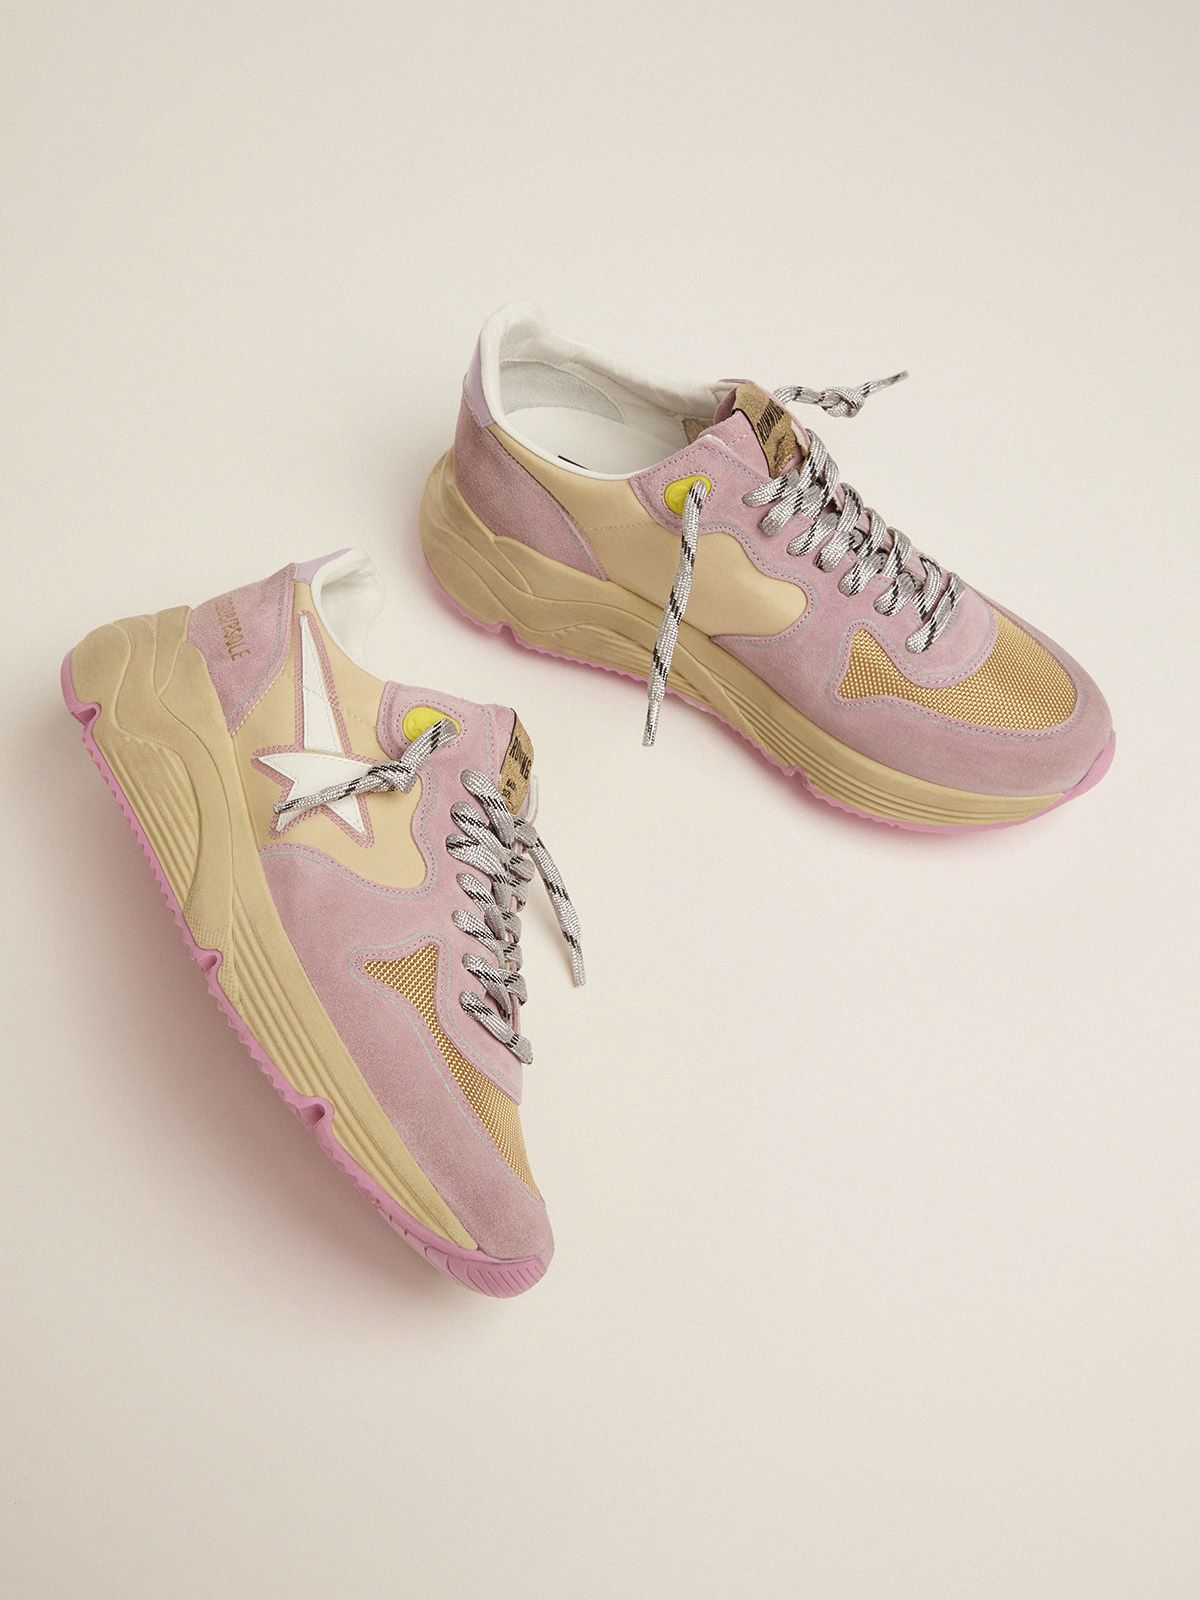 Golden Goose - Pastel pink Running Sole sneakers with white star in